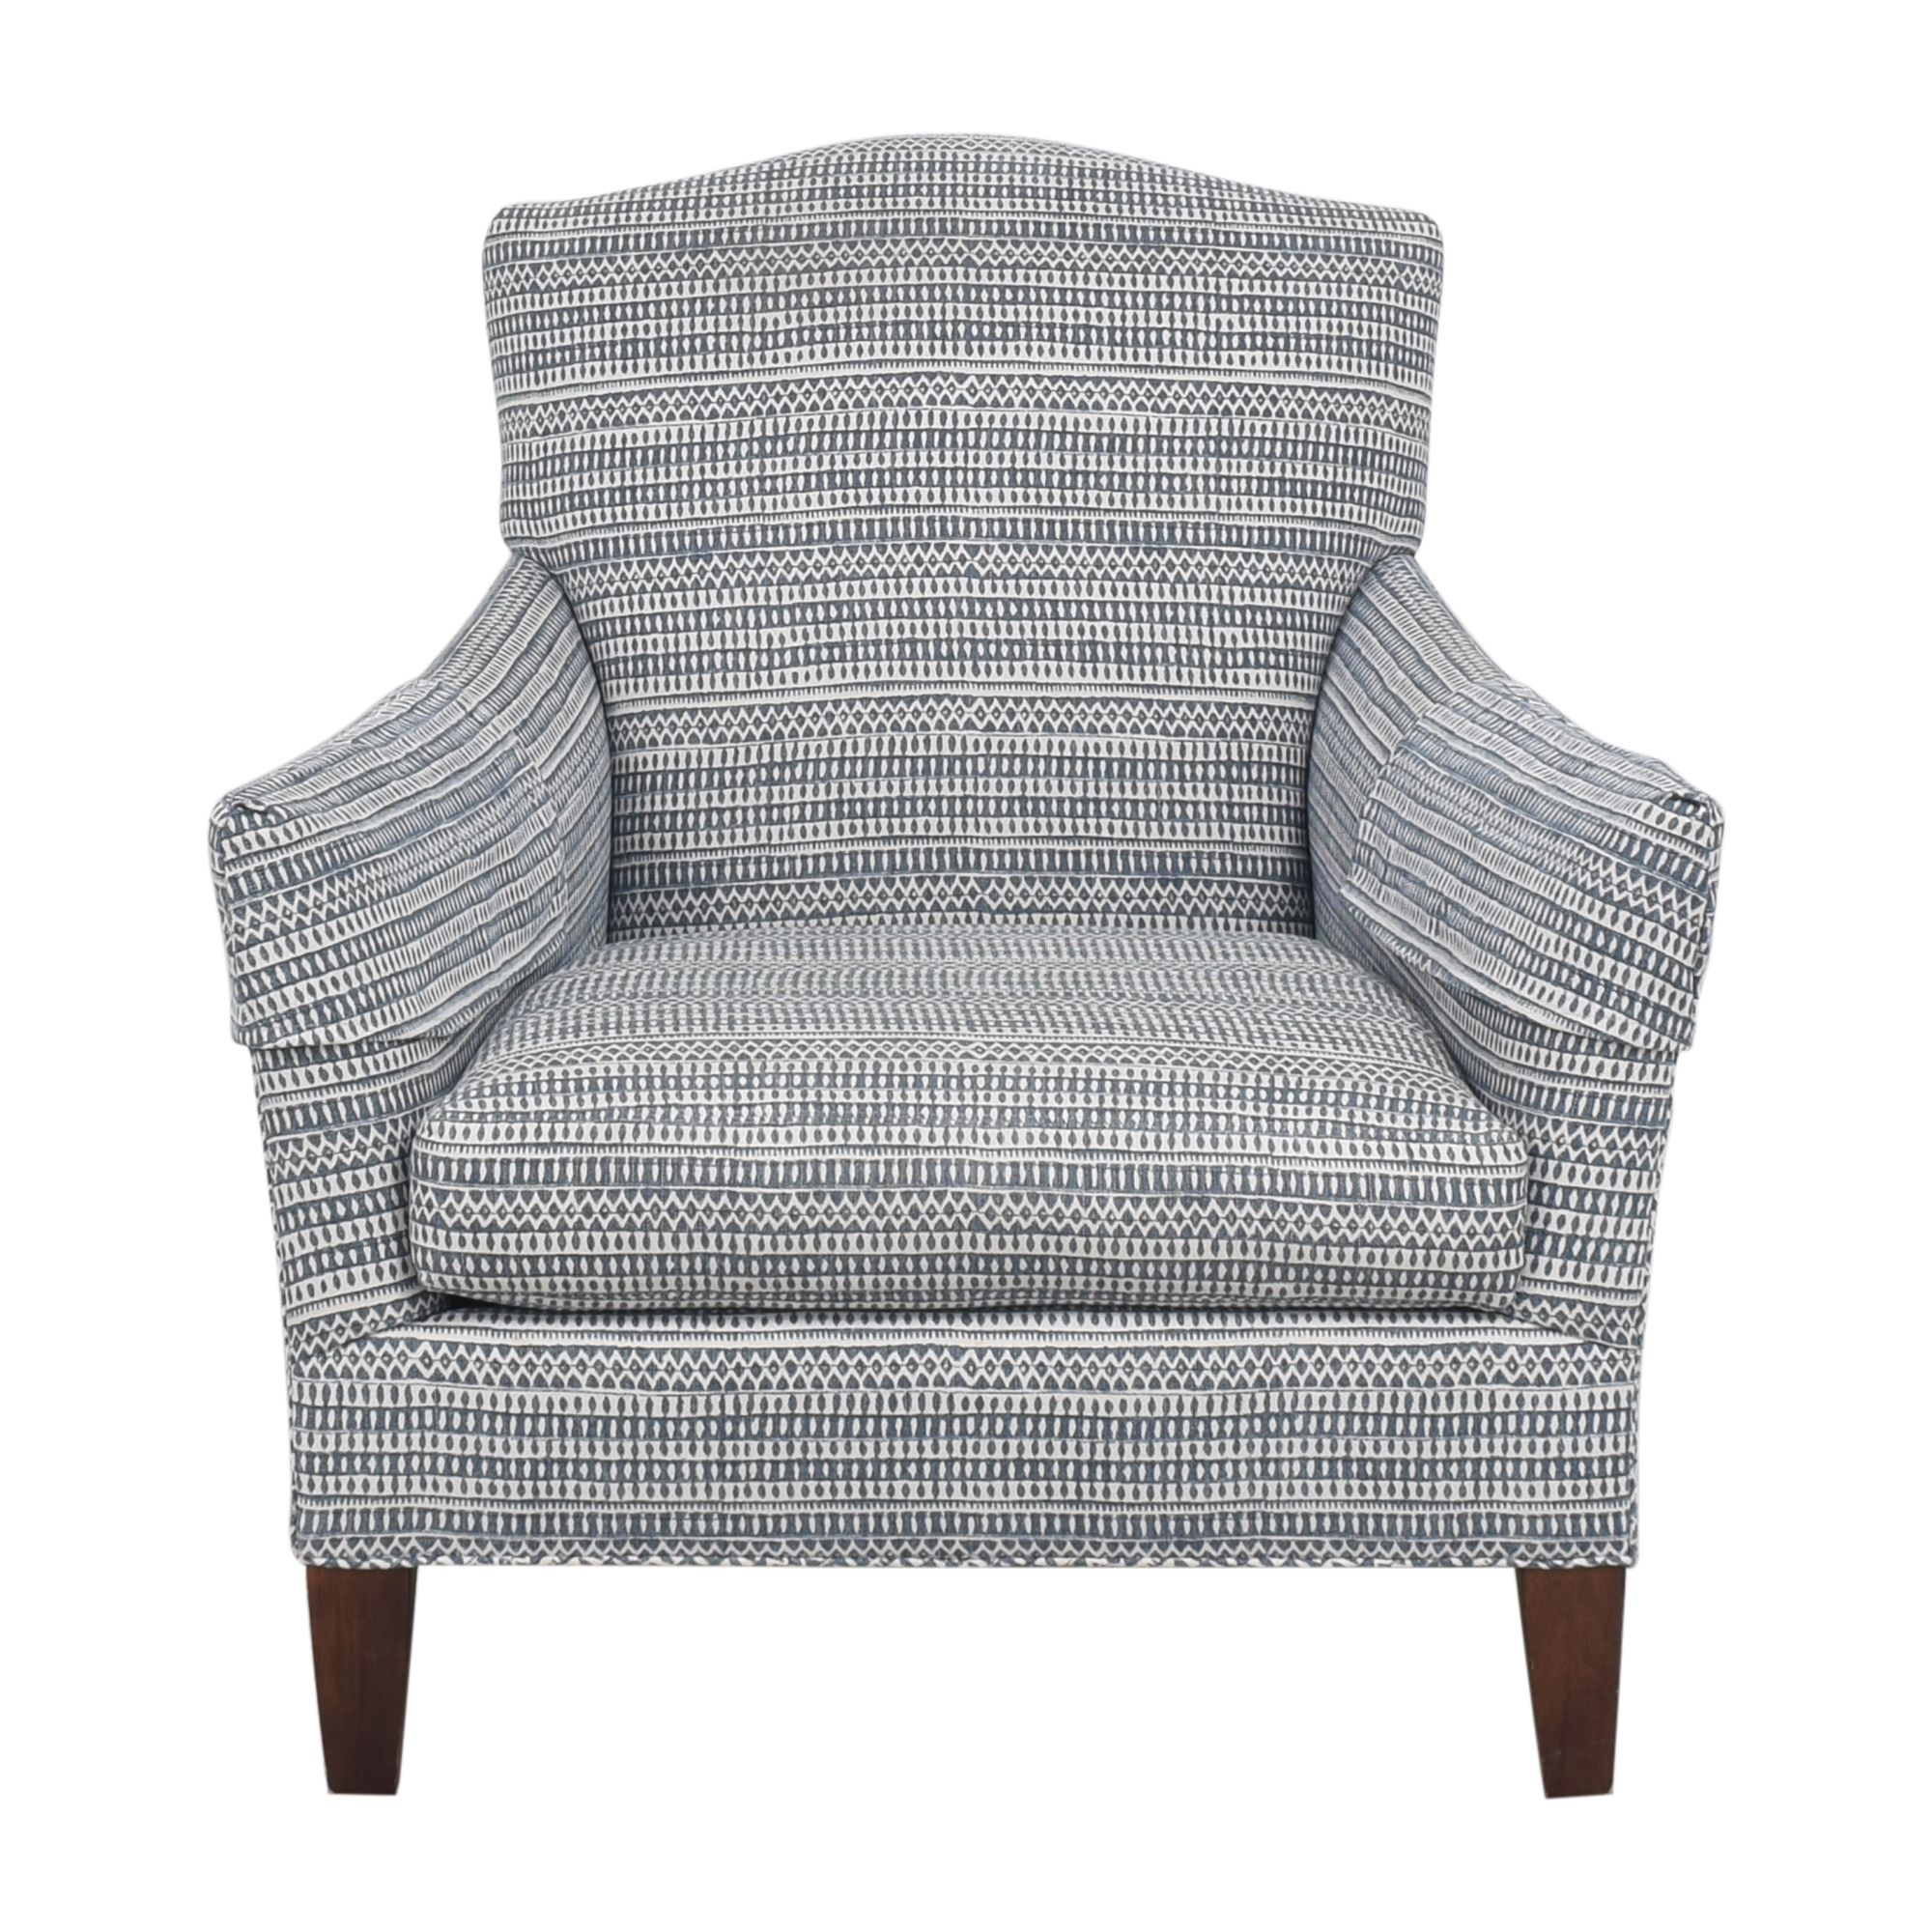 shop ABC Carpet & Home ABC Carpet & Home Accent Chair online